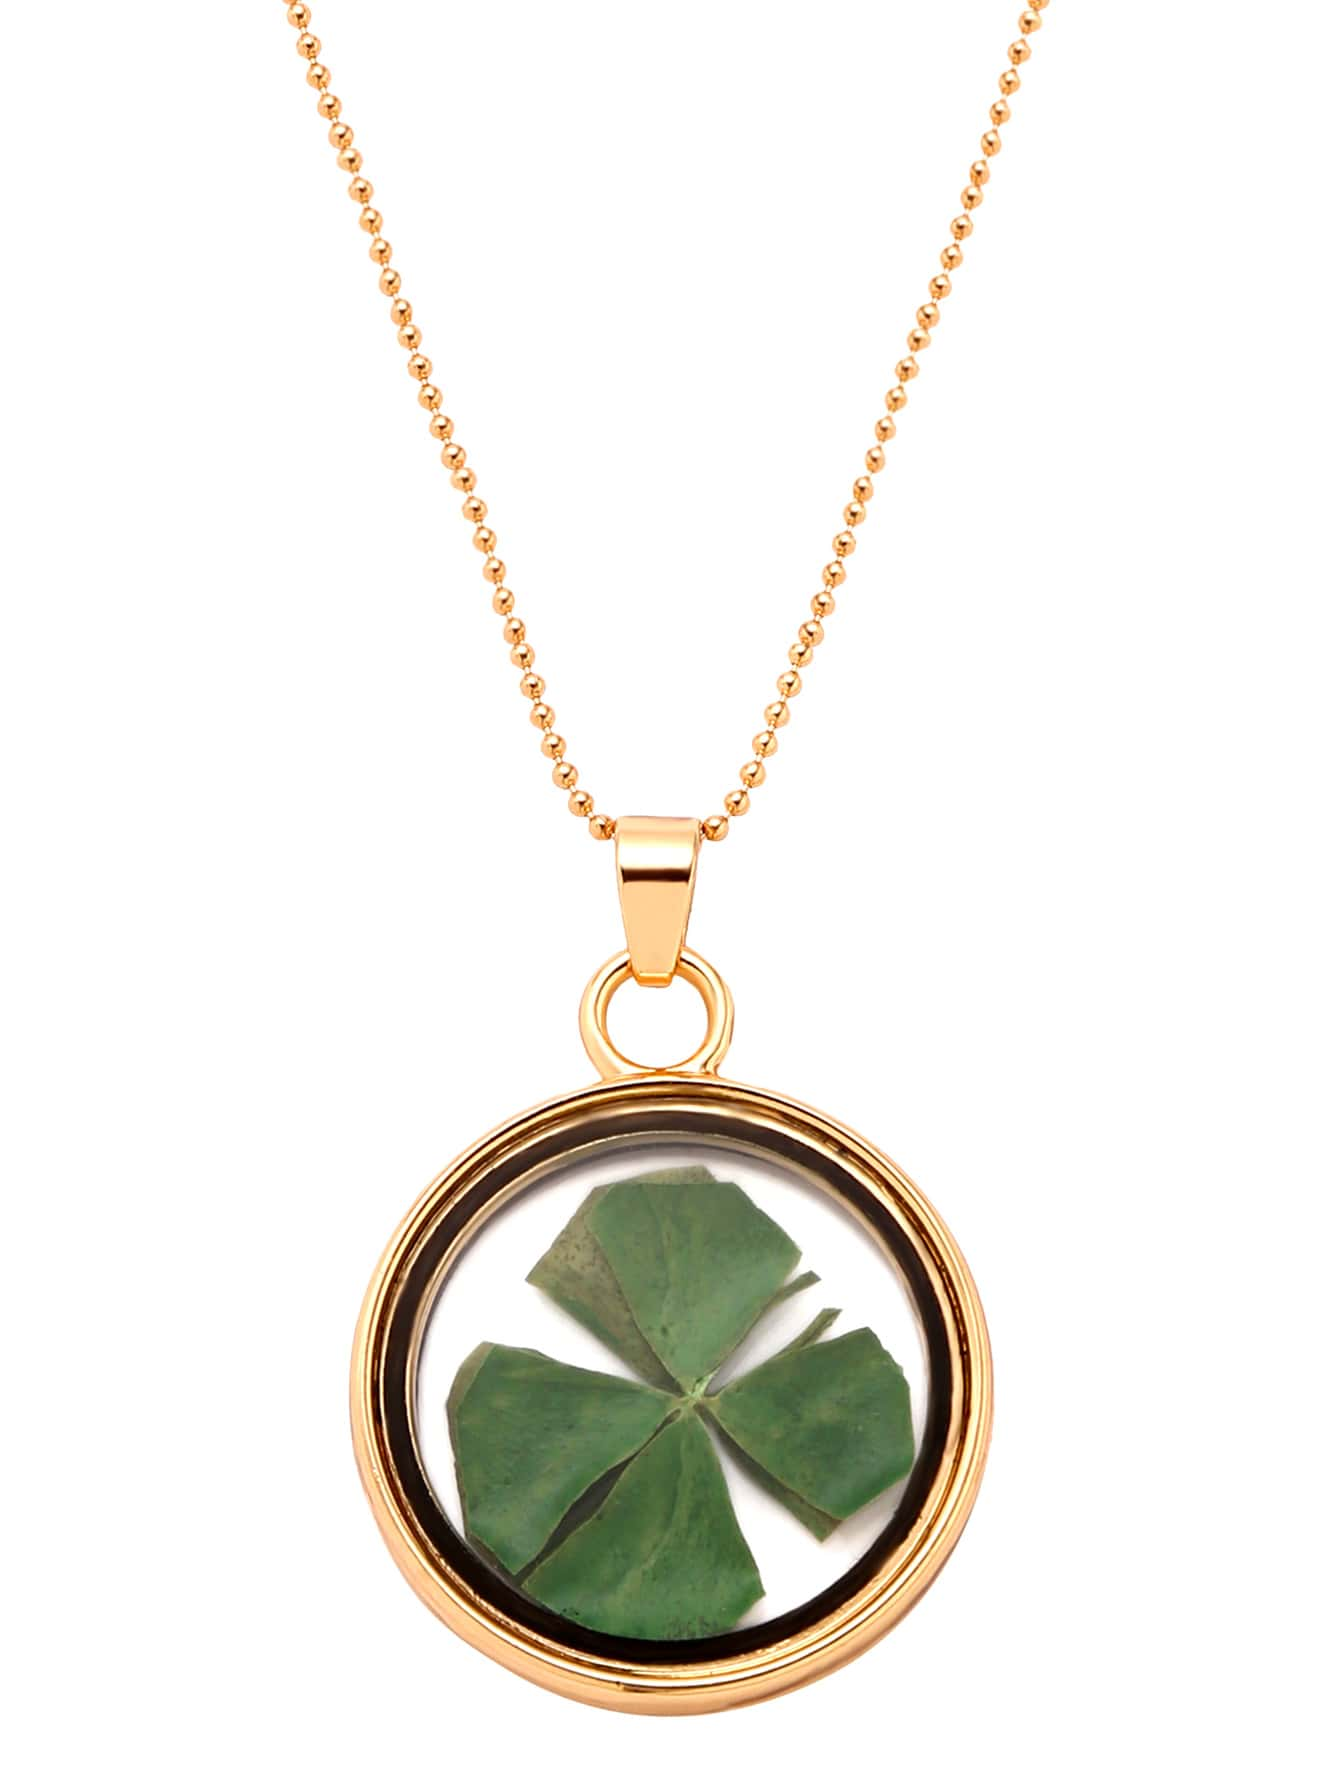 Gold Glass Pendant With Dried Clover NecklaceGold Glass Pendant With Dried Clover Necklace<br><br>color: None<br>size: None